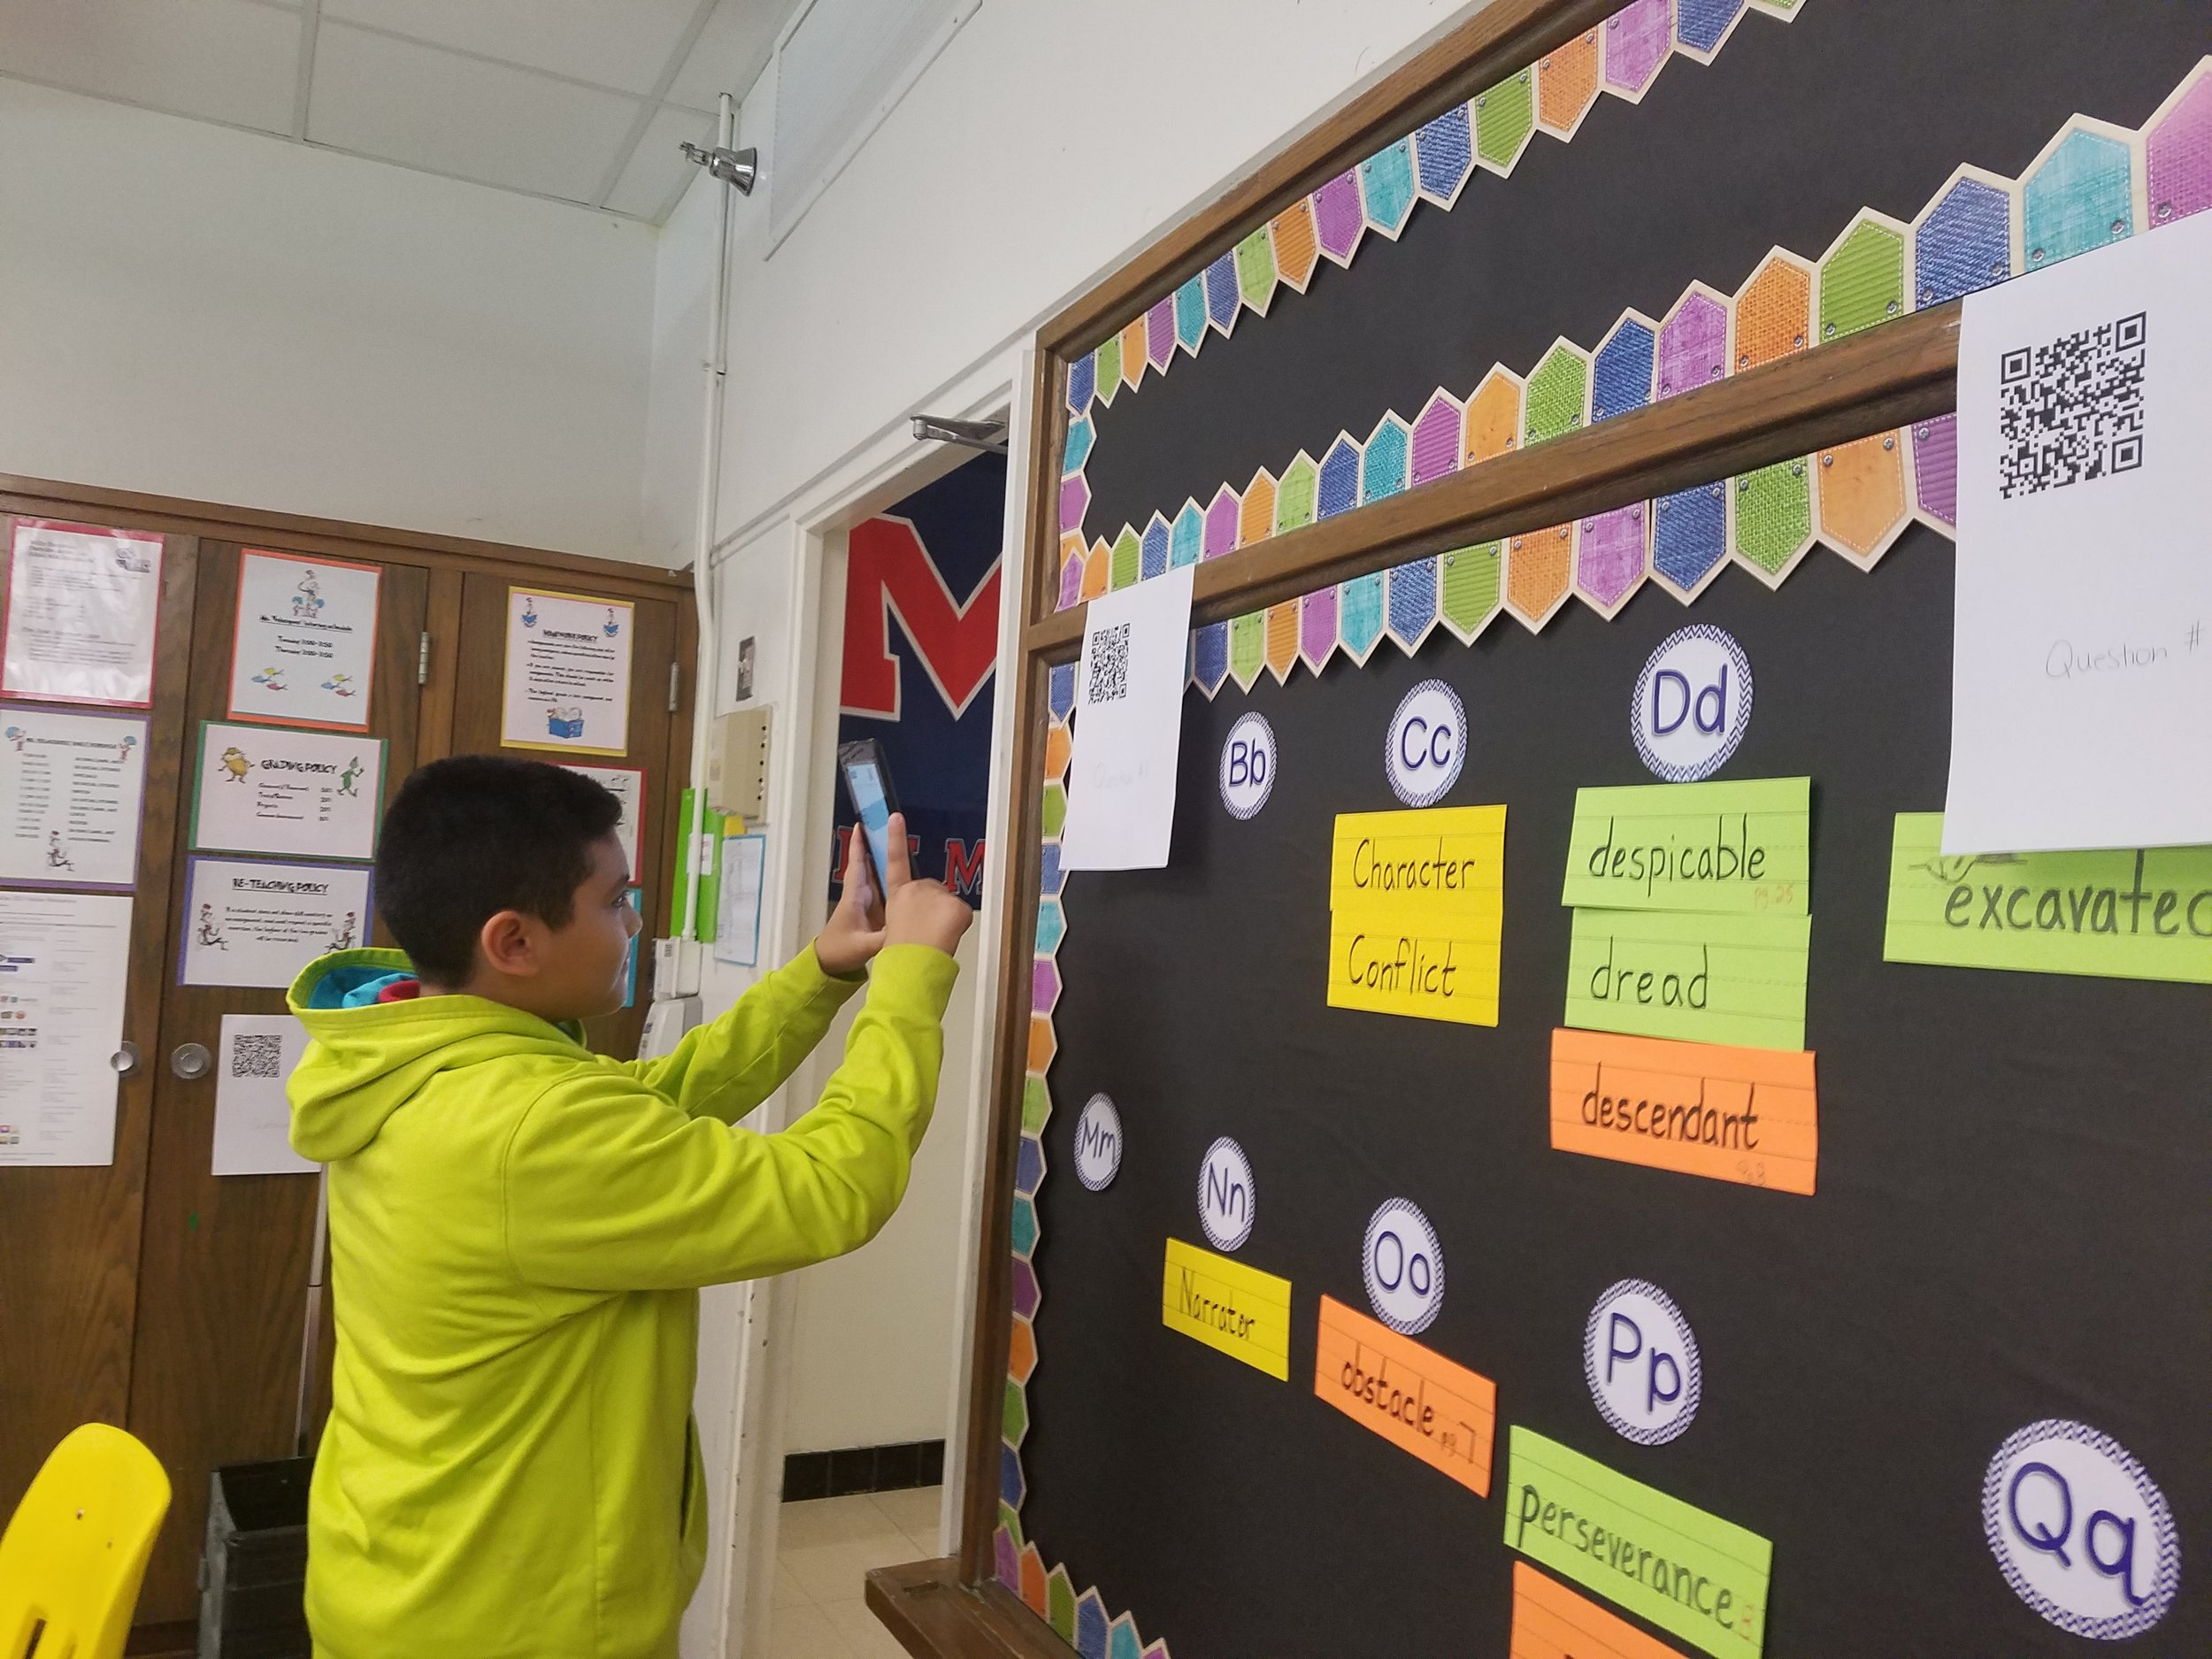 5th grade student at Reilly Elementary using a QR code to access the next part of their class activity.